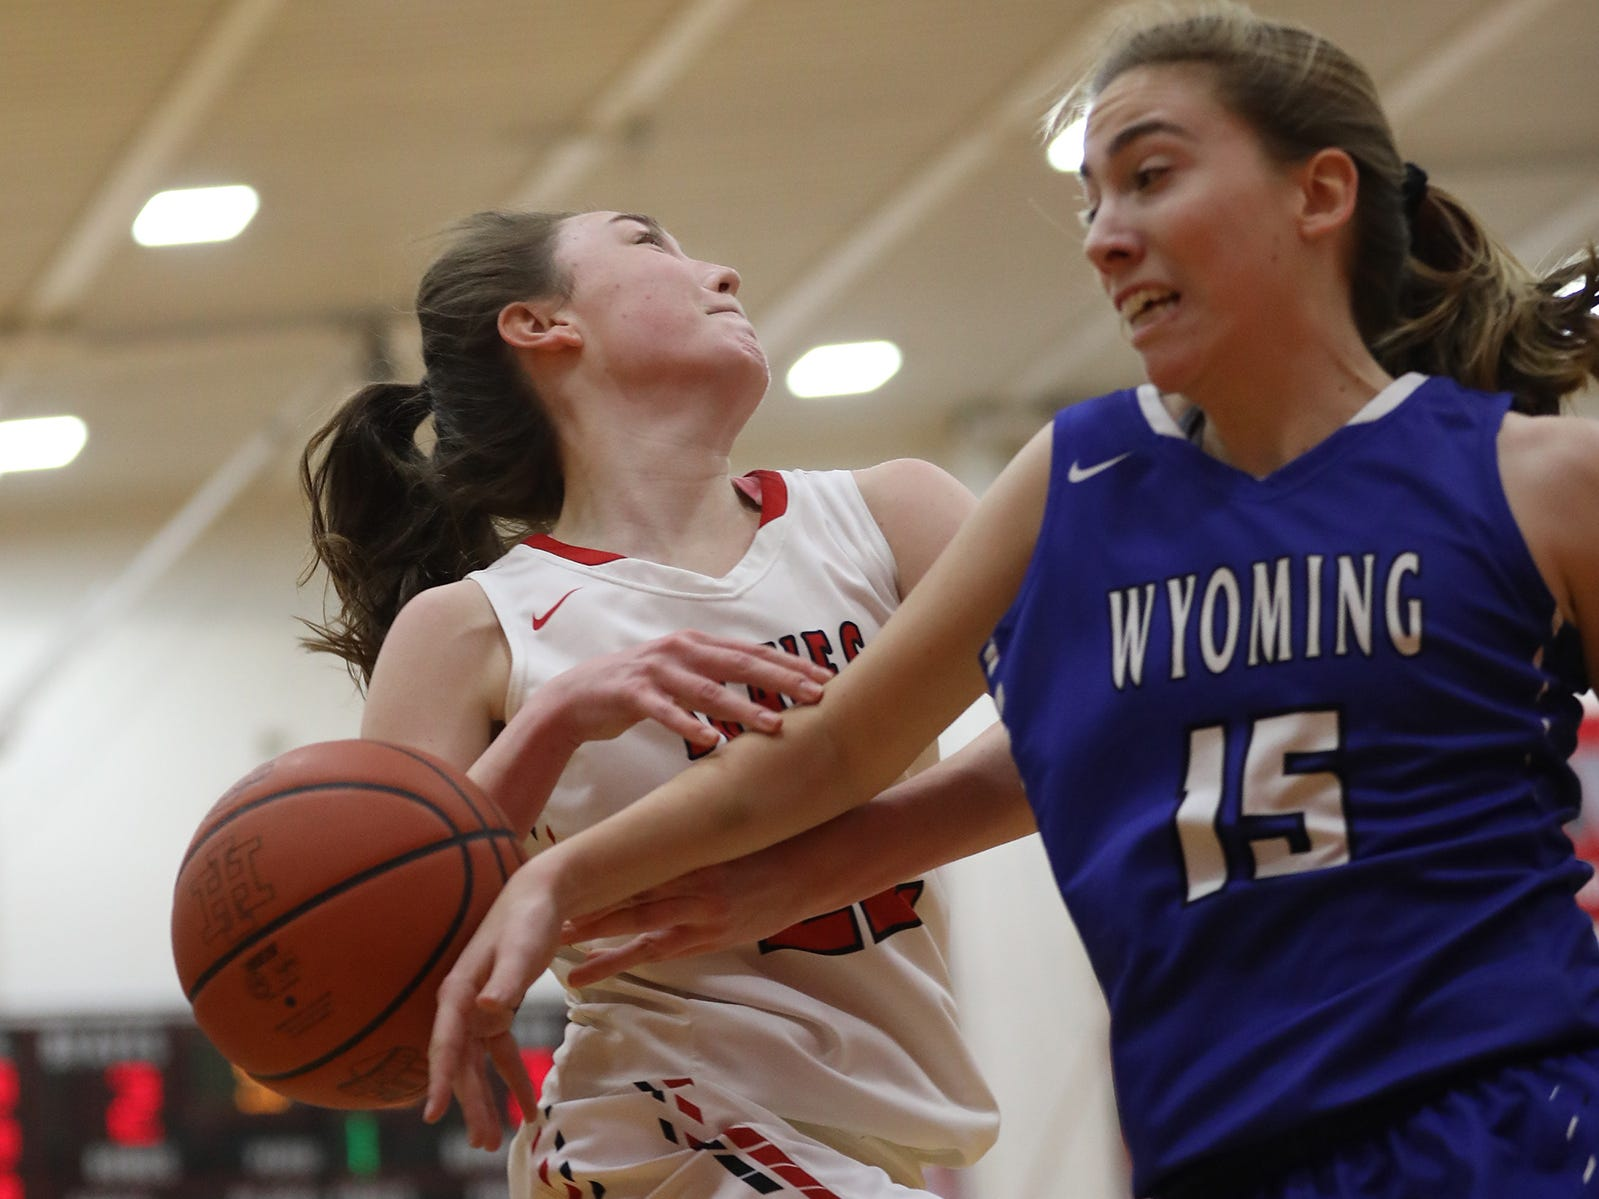 Wyoming guard Elly McCullumsmith (15) knocks the ball away from Indian Hill guard Ella Riggs during their basketball game, Thursday, Jan. 10,2015.